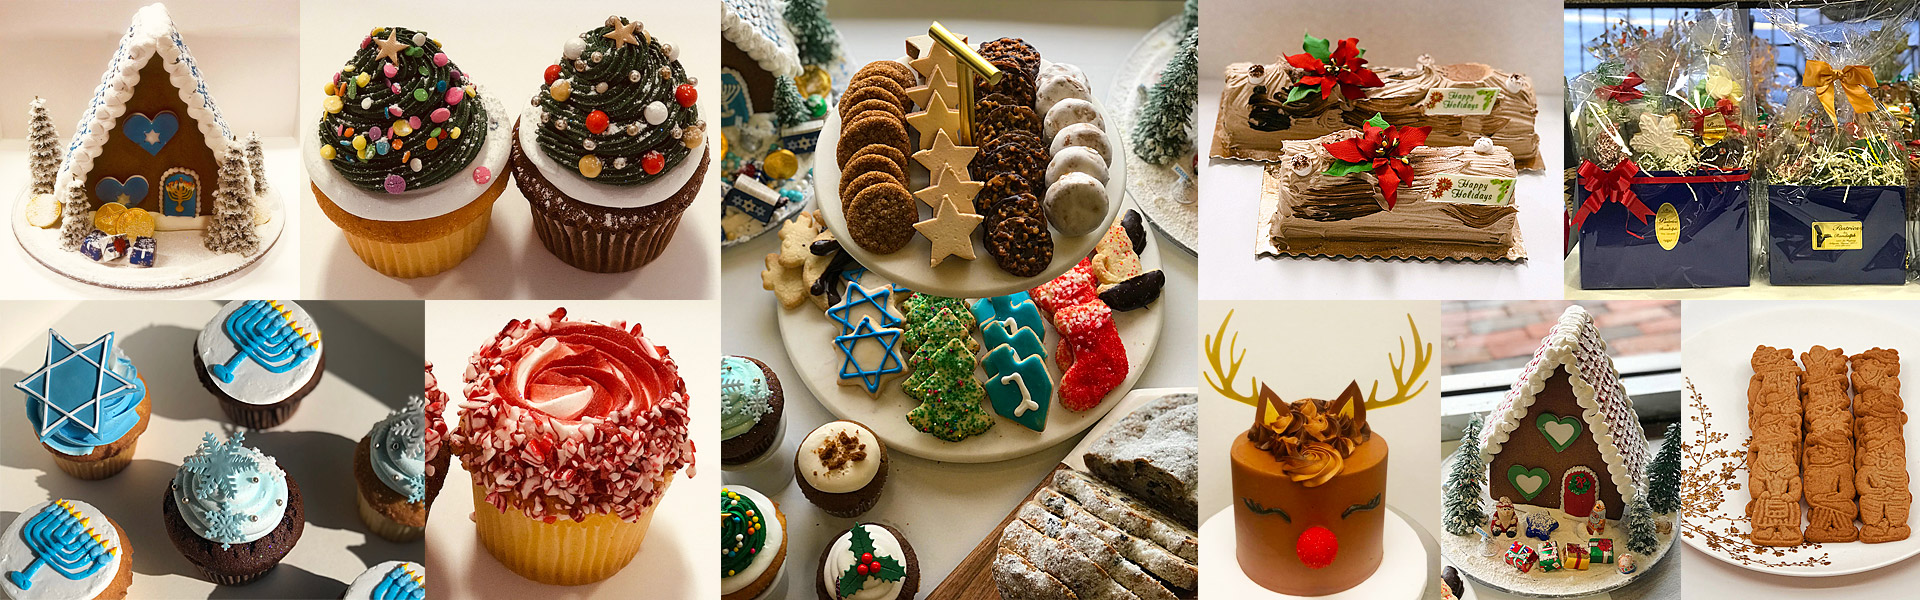 winter holiday collage of treats